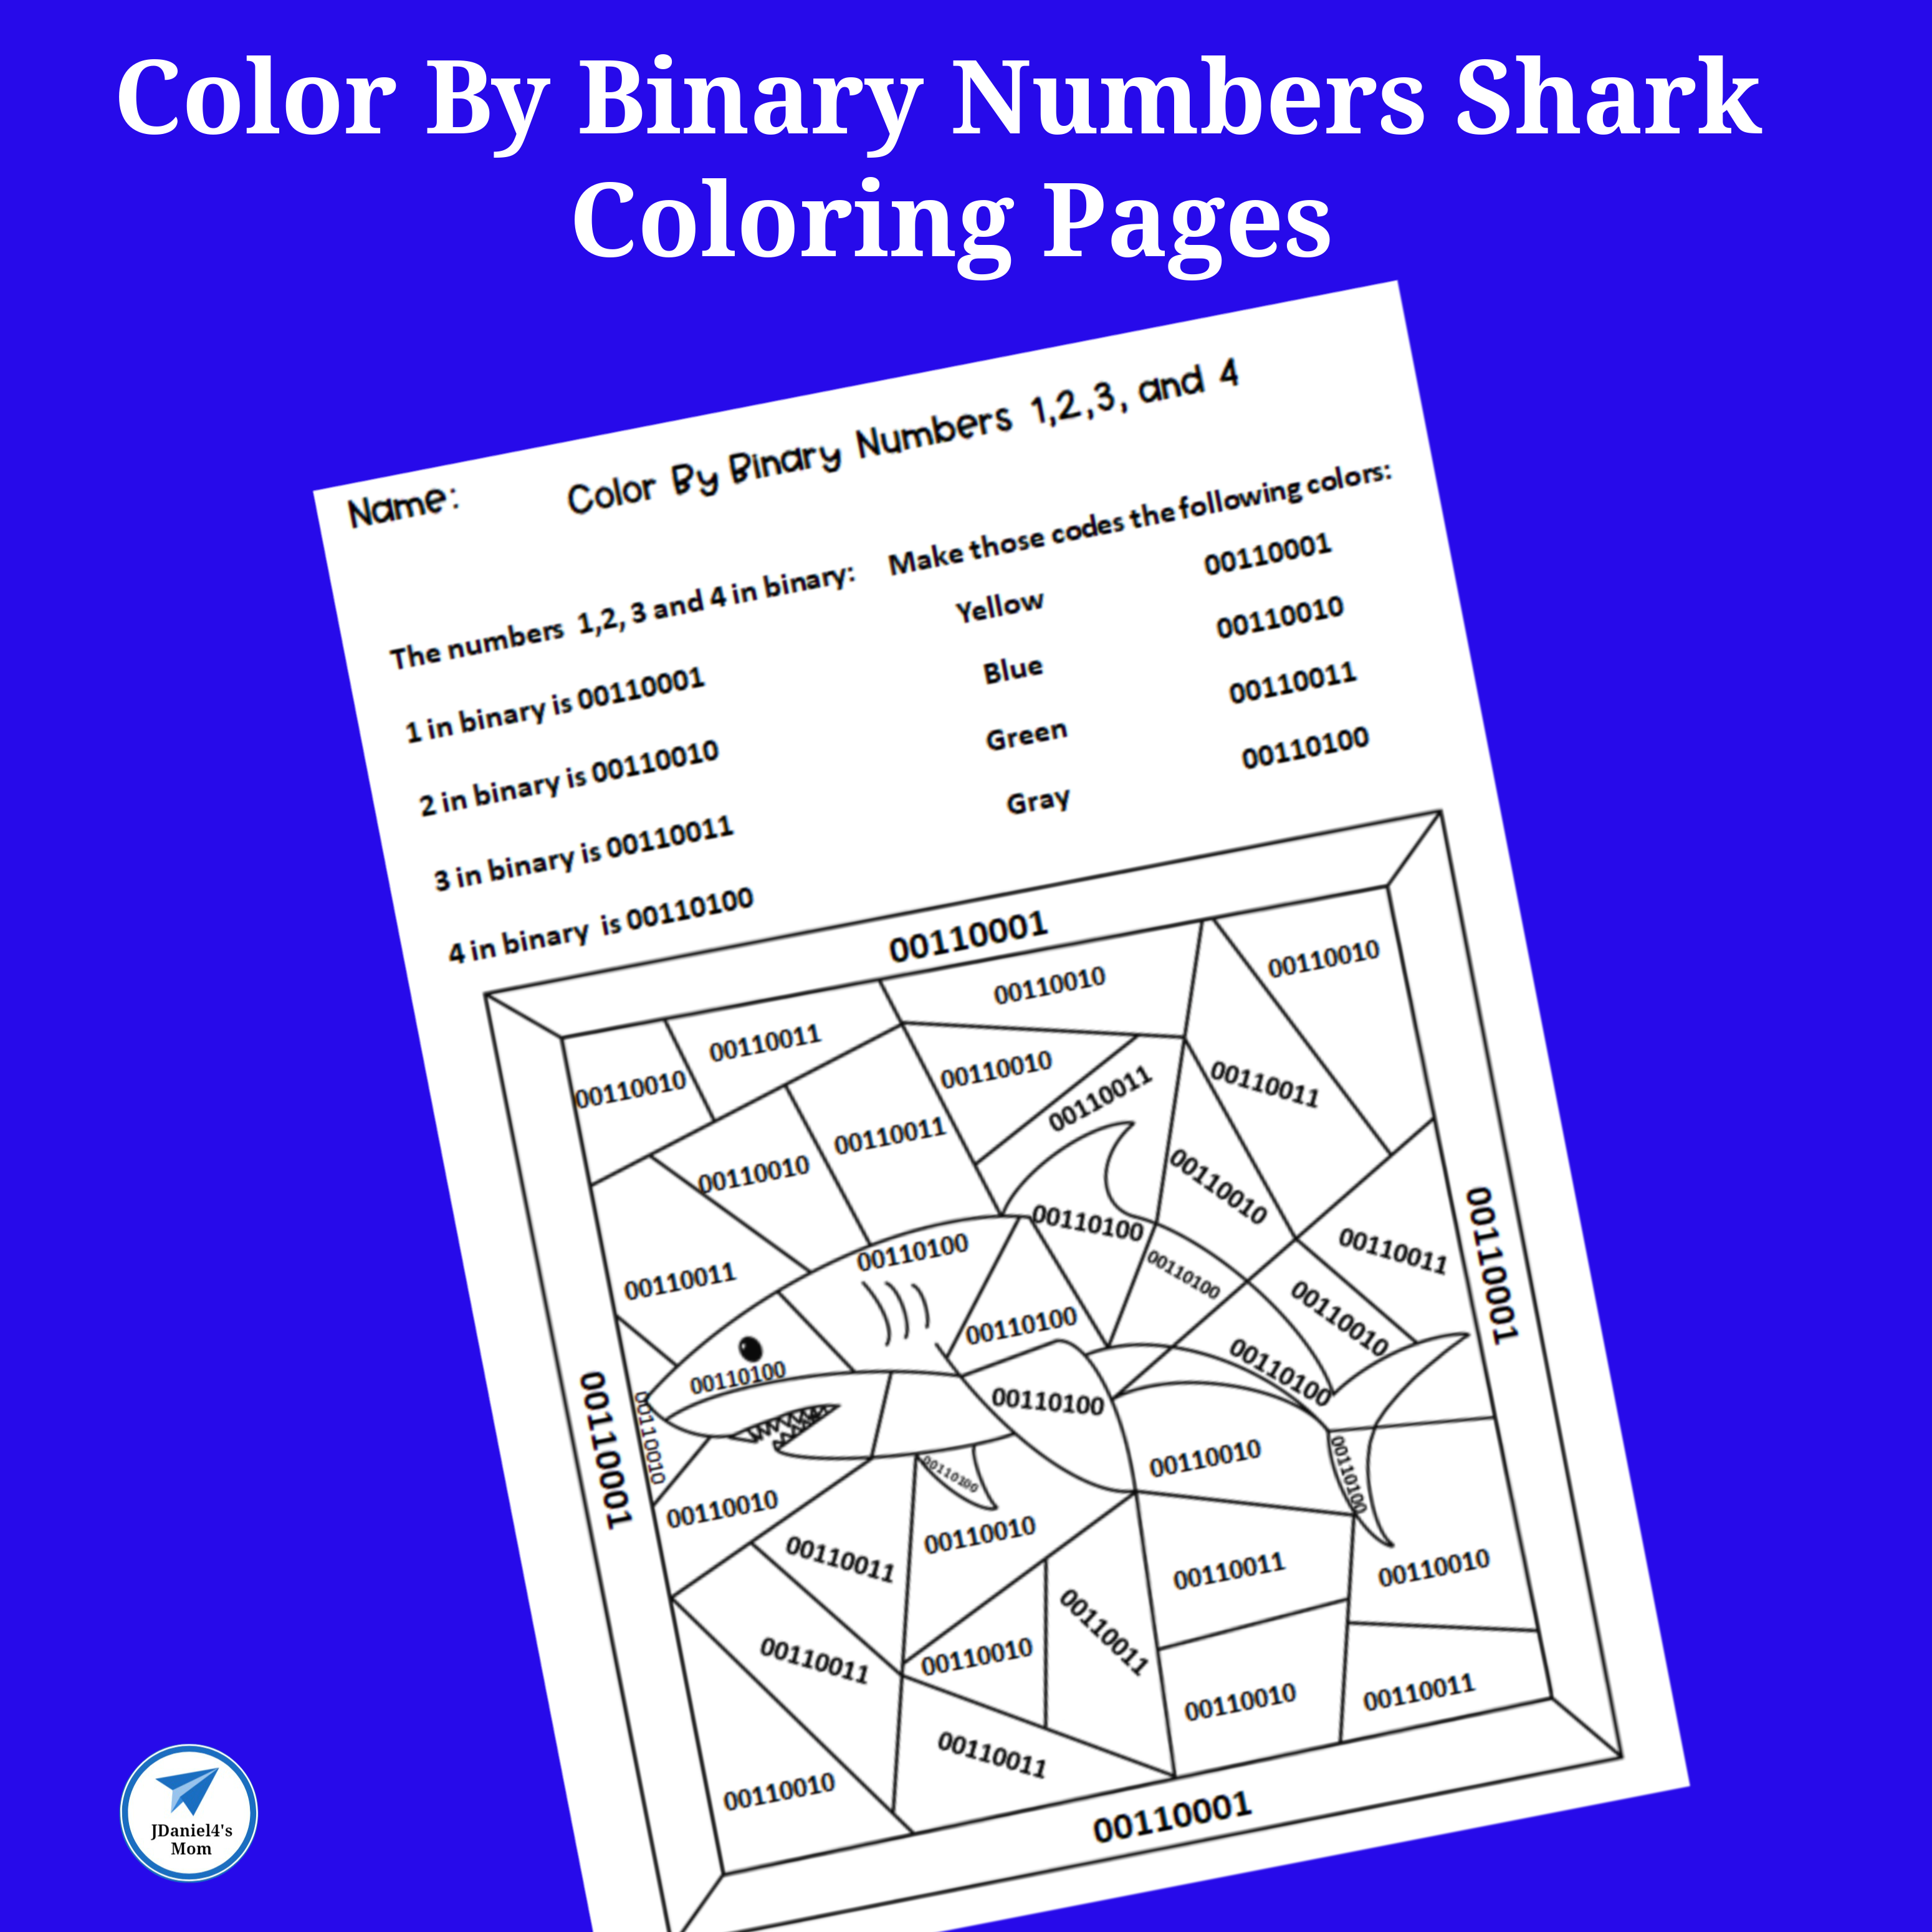 Color By Binary Numbers Shark Coloring Pages Square